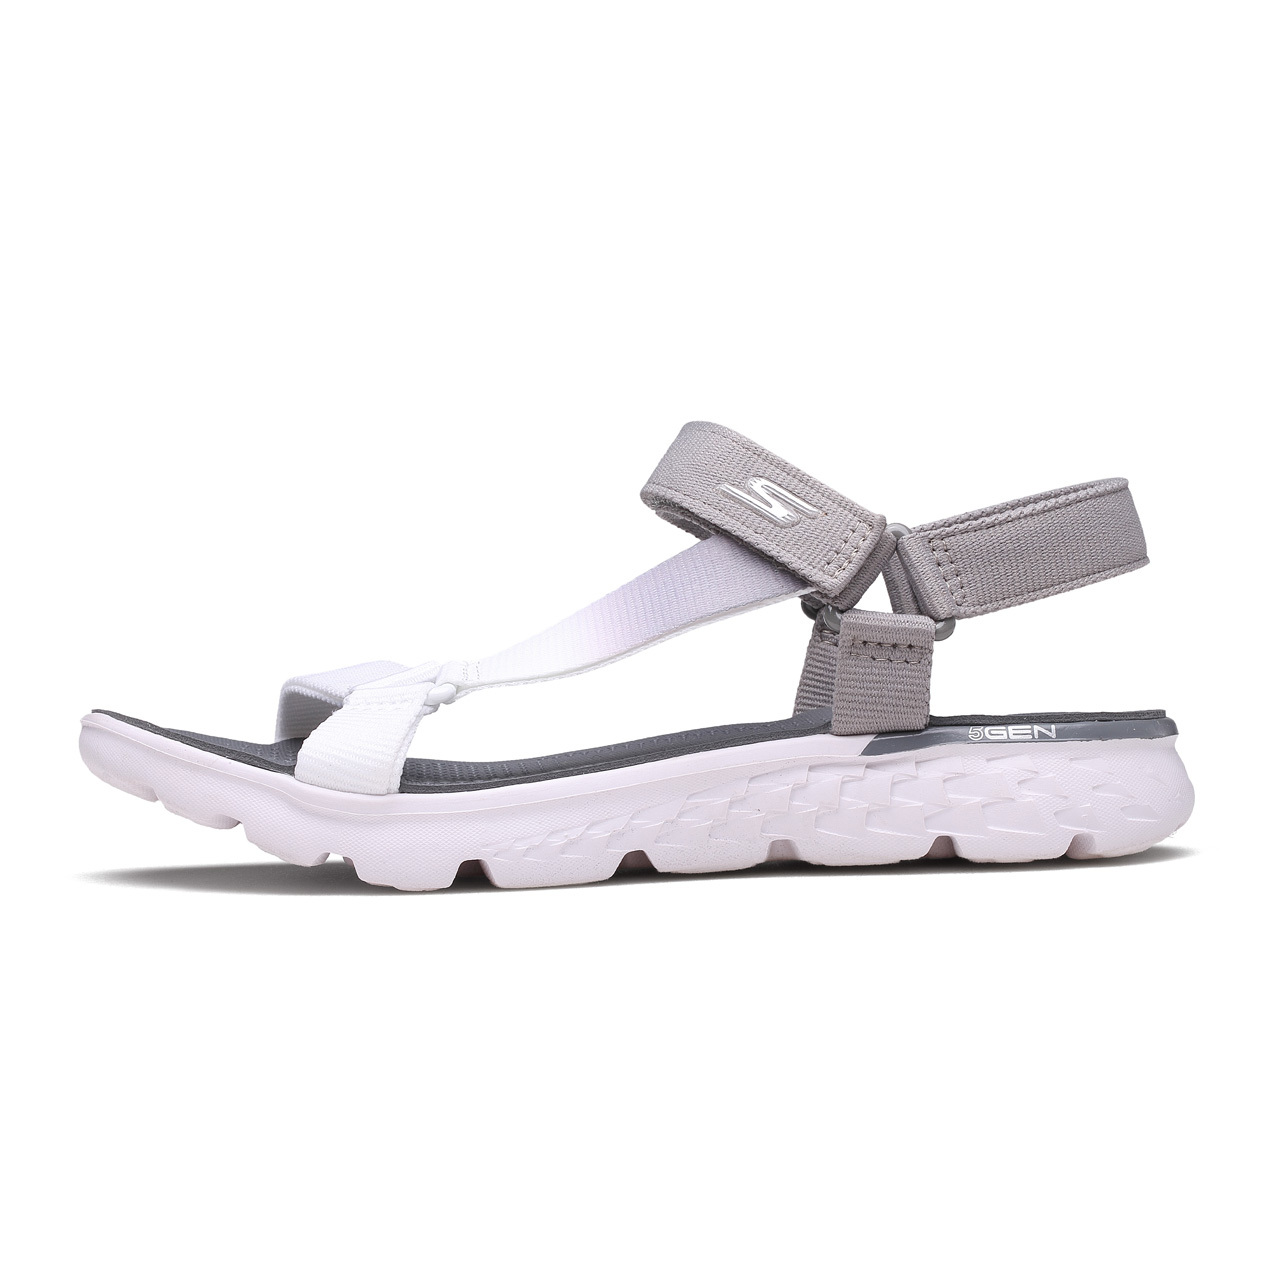 95d03149a0d1e ... lightbox moreview · lightbox moreview. PrevNext. Skechers Skechers  women s shoes simple and comfortable sandals casual velcro sandals sandals  14677